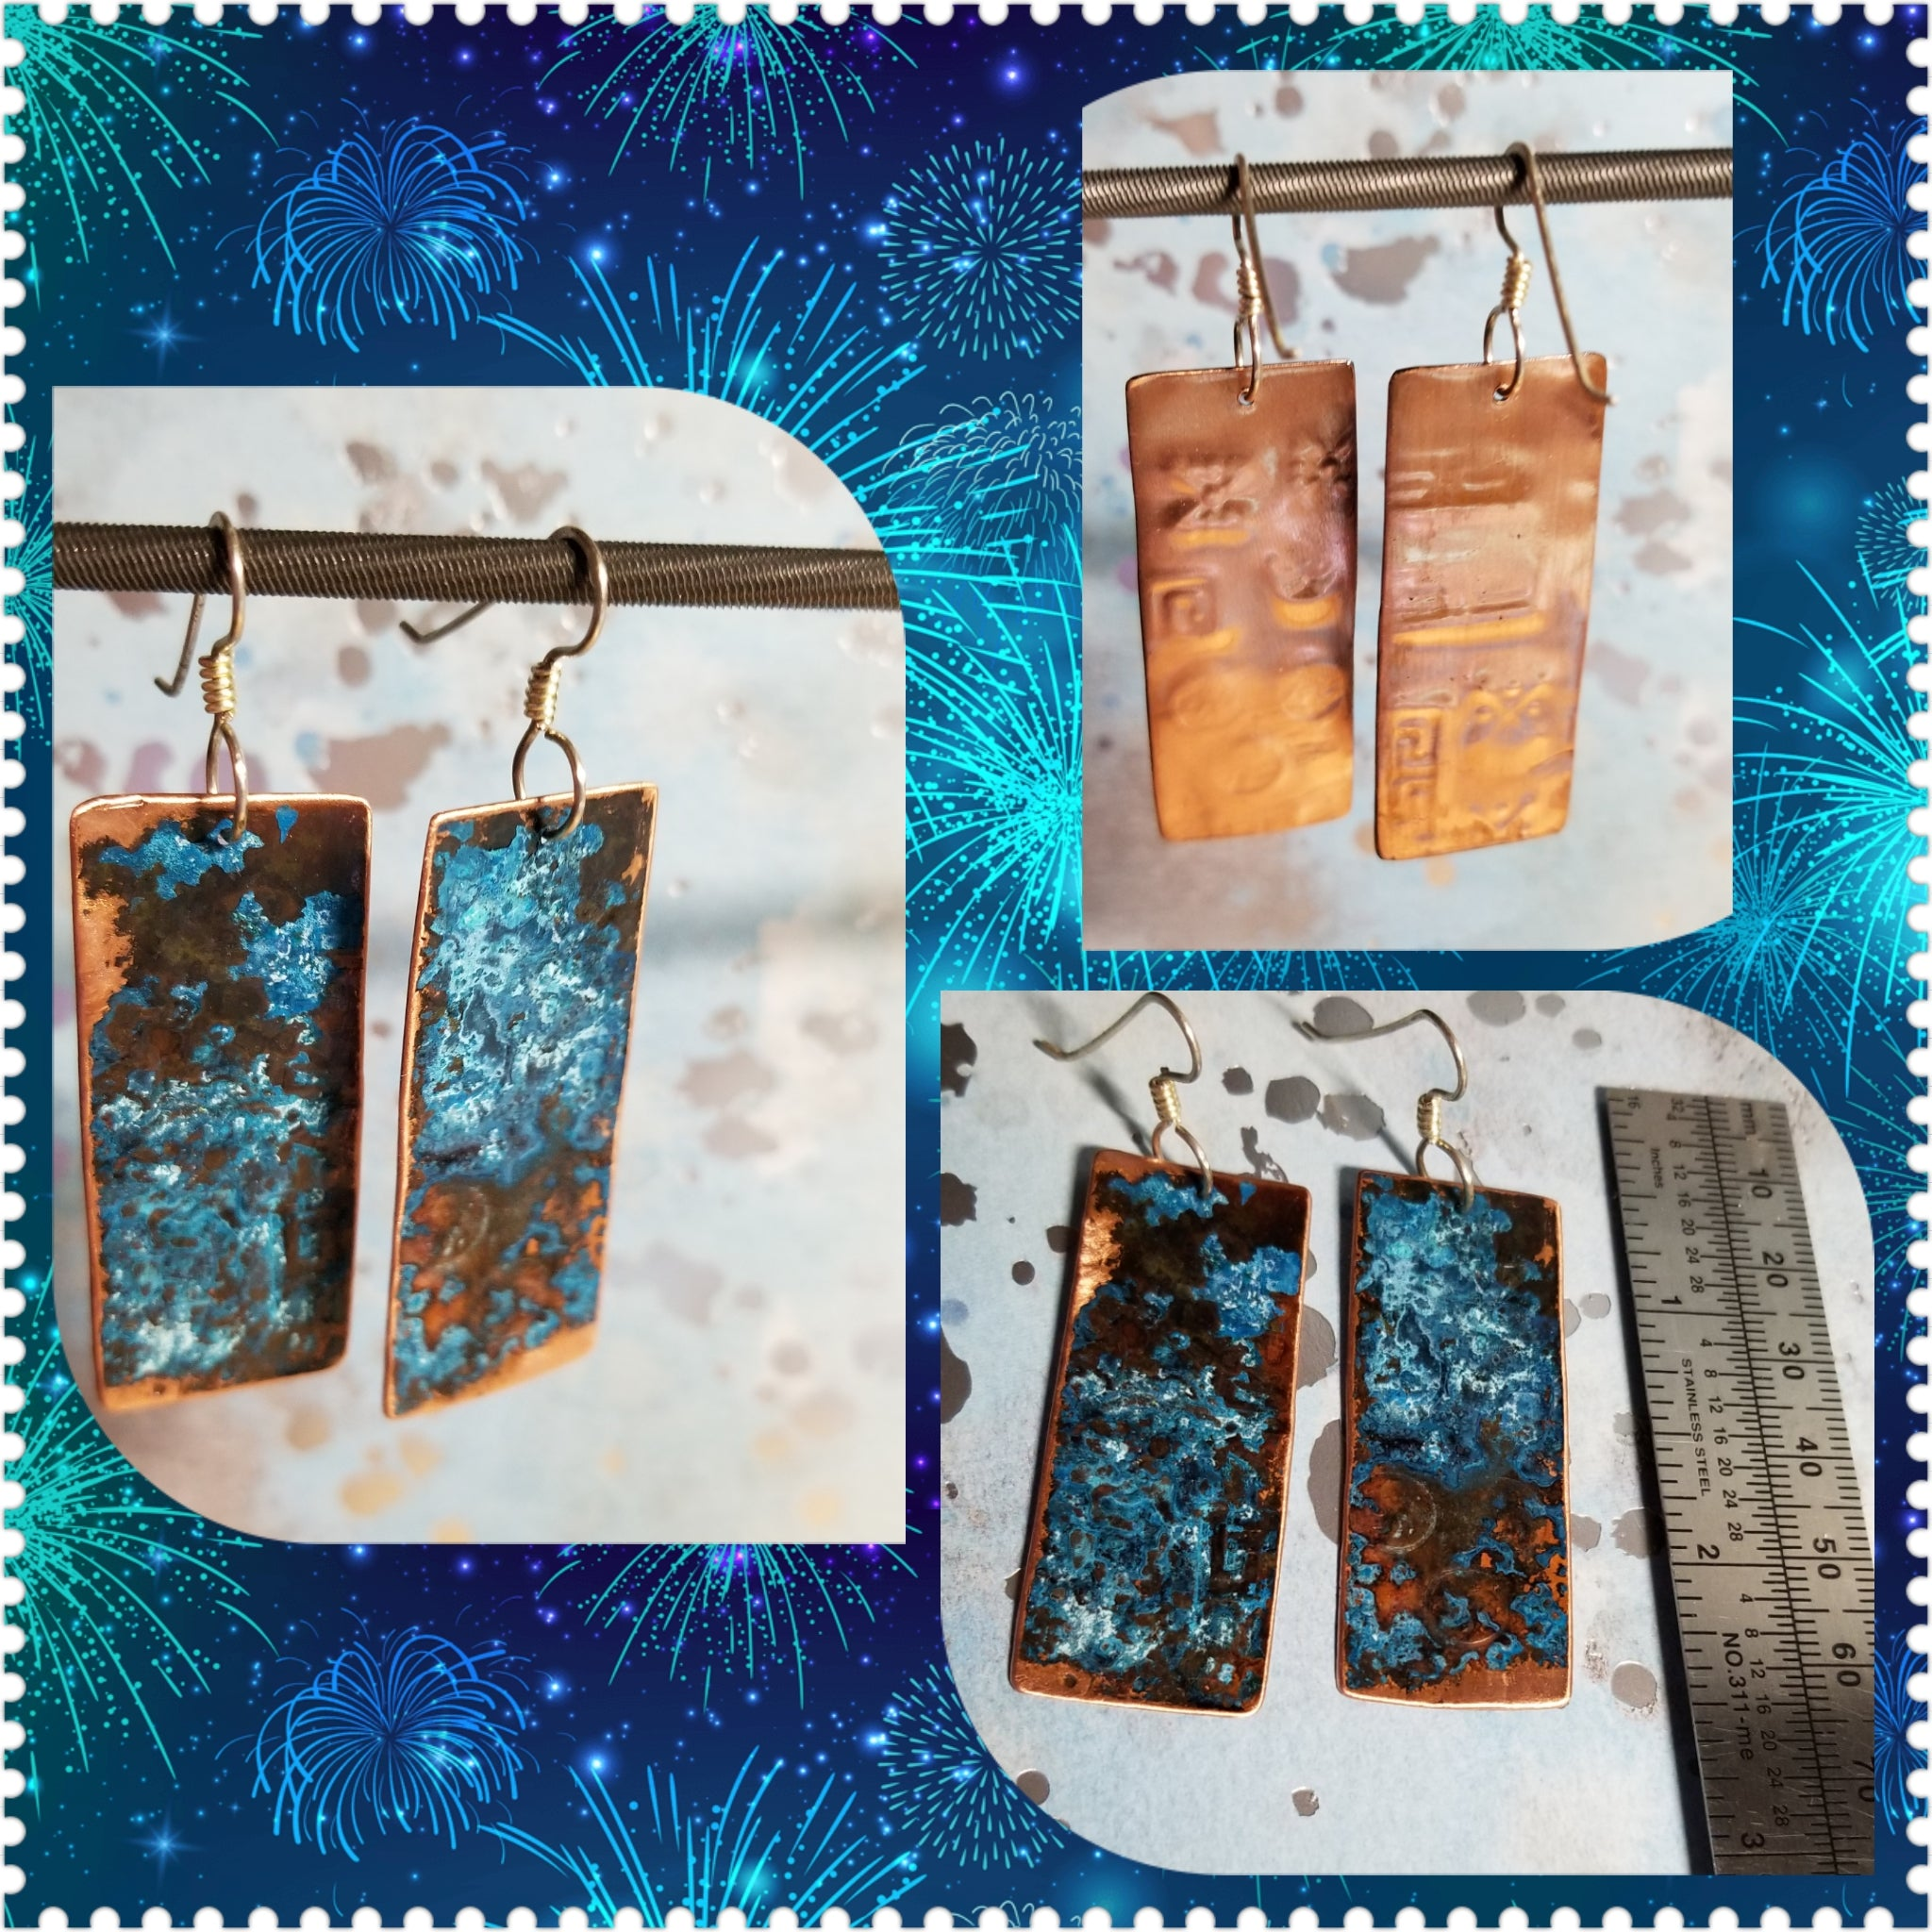 E43. OOAK Copper Turquoise Blue Patina earrings  - rustic jewelry - patina jewelry - recycled copper - everyday turquoise contemporary jewelry design